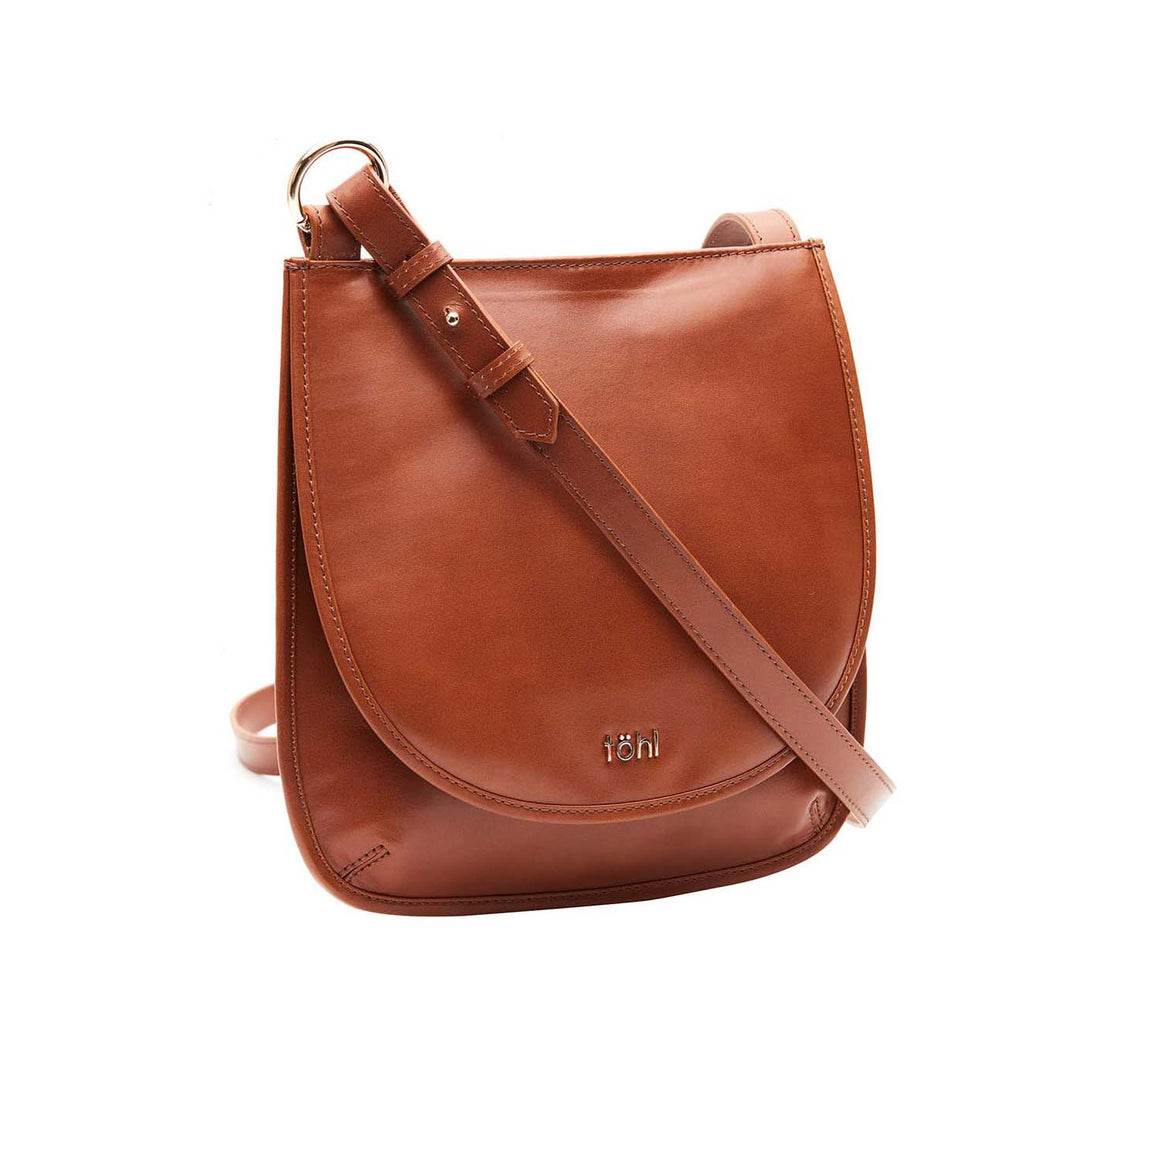 SG 0027 - TOHL LEITH WOMEN'S SLING & CROSSBODY BAG - VINTAGE TAN